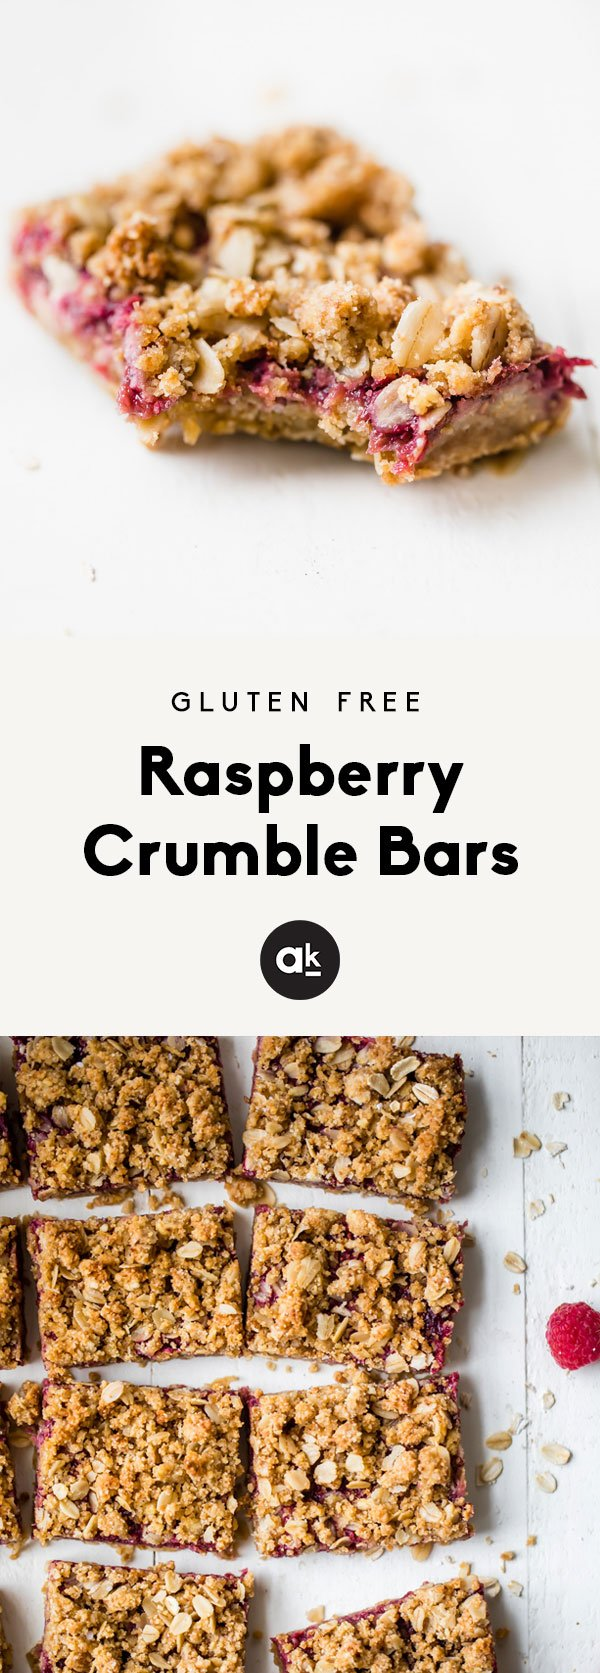 Healthy, gluten free fresh raspberry crumble bars made with a fresh raspberry jam. This healthy dessert is easy to make, and perfect for using up your summer raspberries!